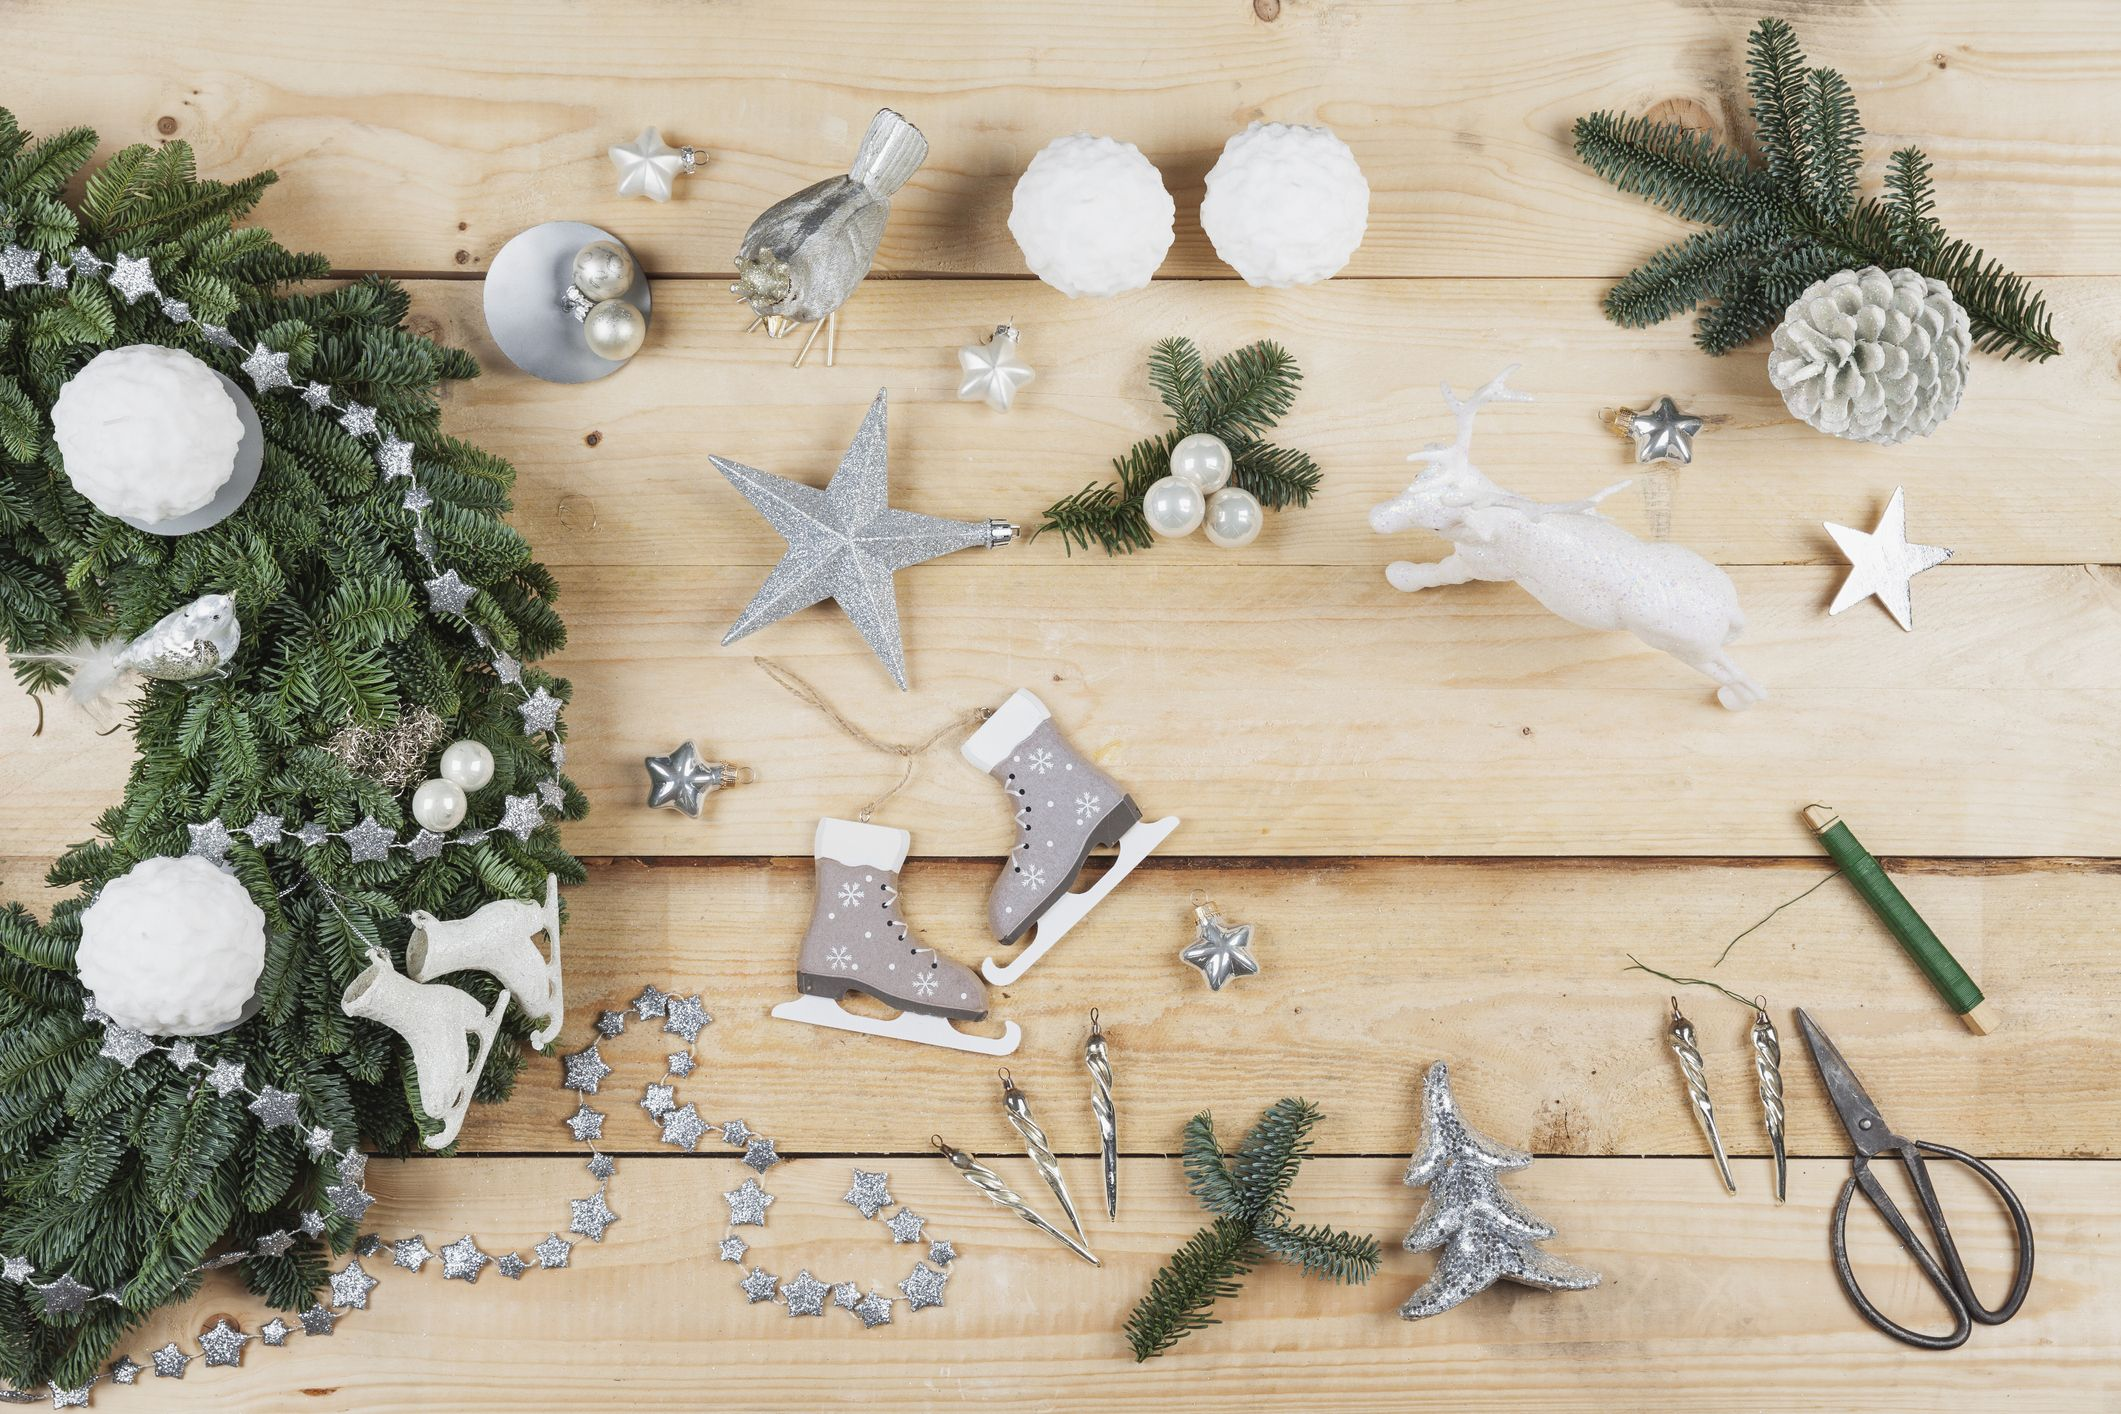 Advent wreath decoration items, self-made advent wreath with real fir tree green, DIY, glitter deer, snow ball candles, skates, birds, Christmas baubles, vintage icicles, wire, stars, scissors, fir cone